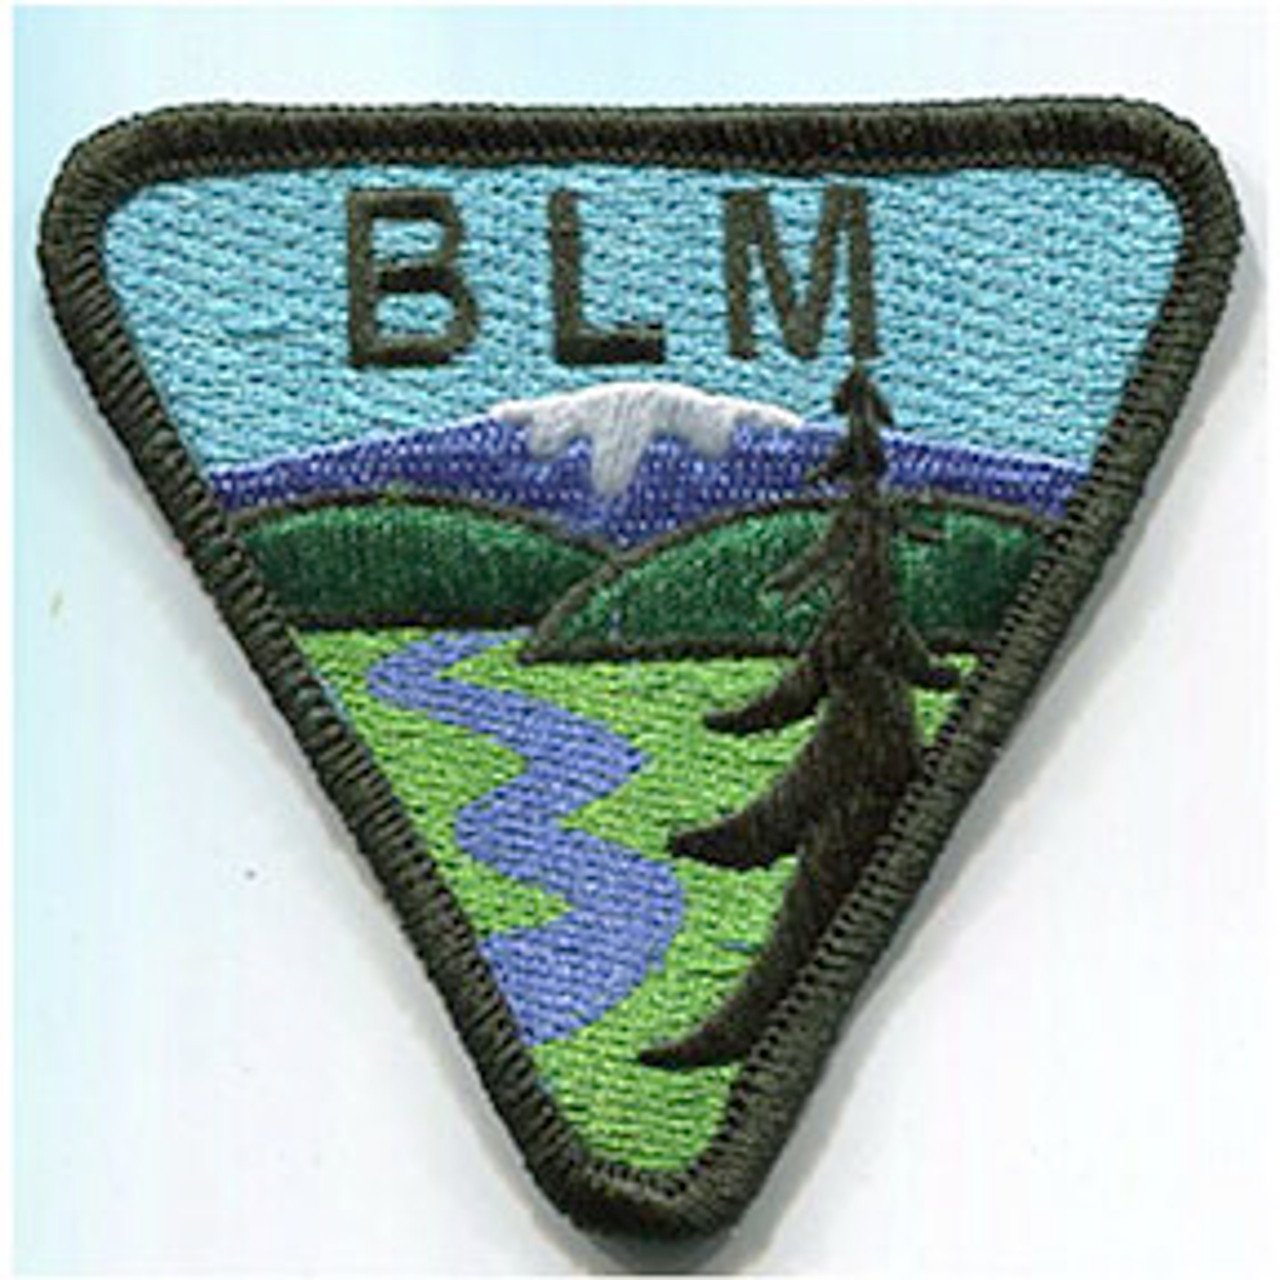 Bureau of Land Management Large Patch